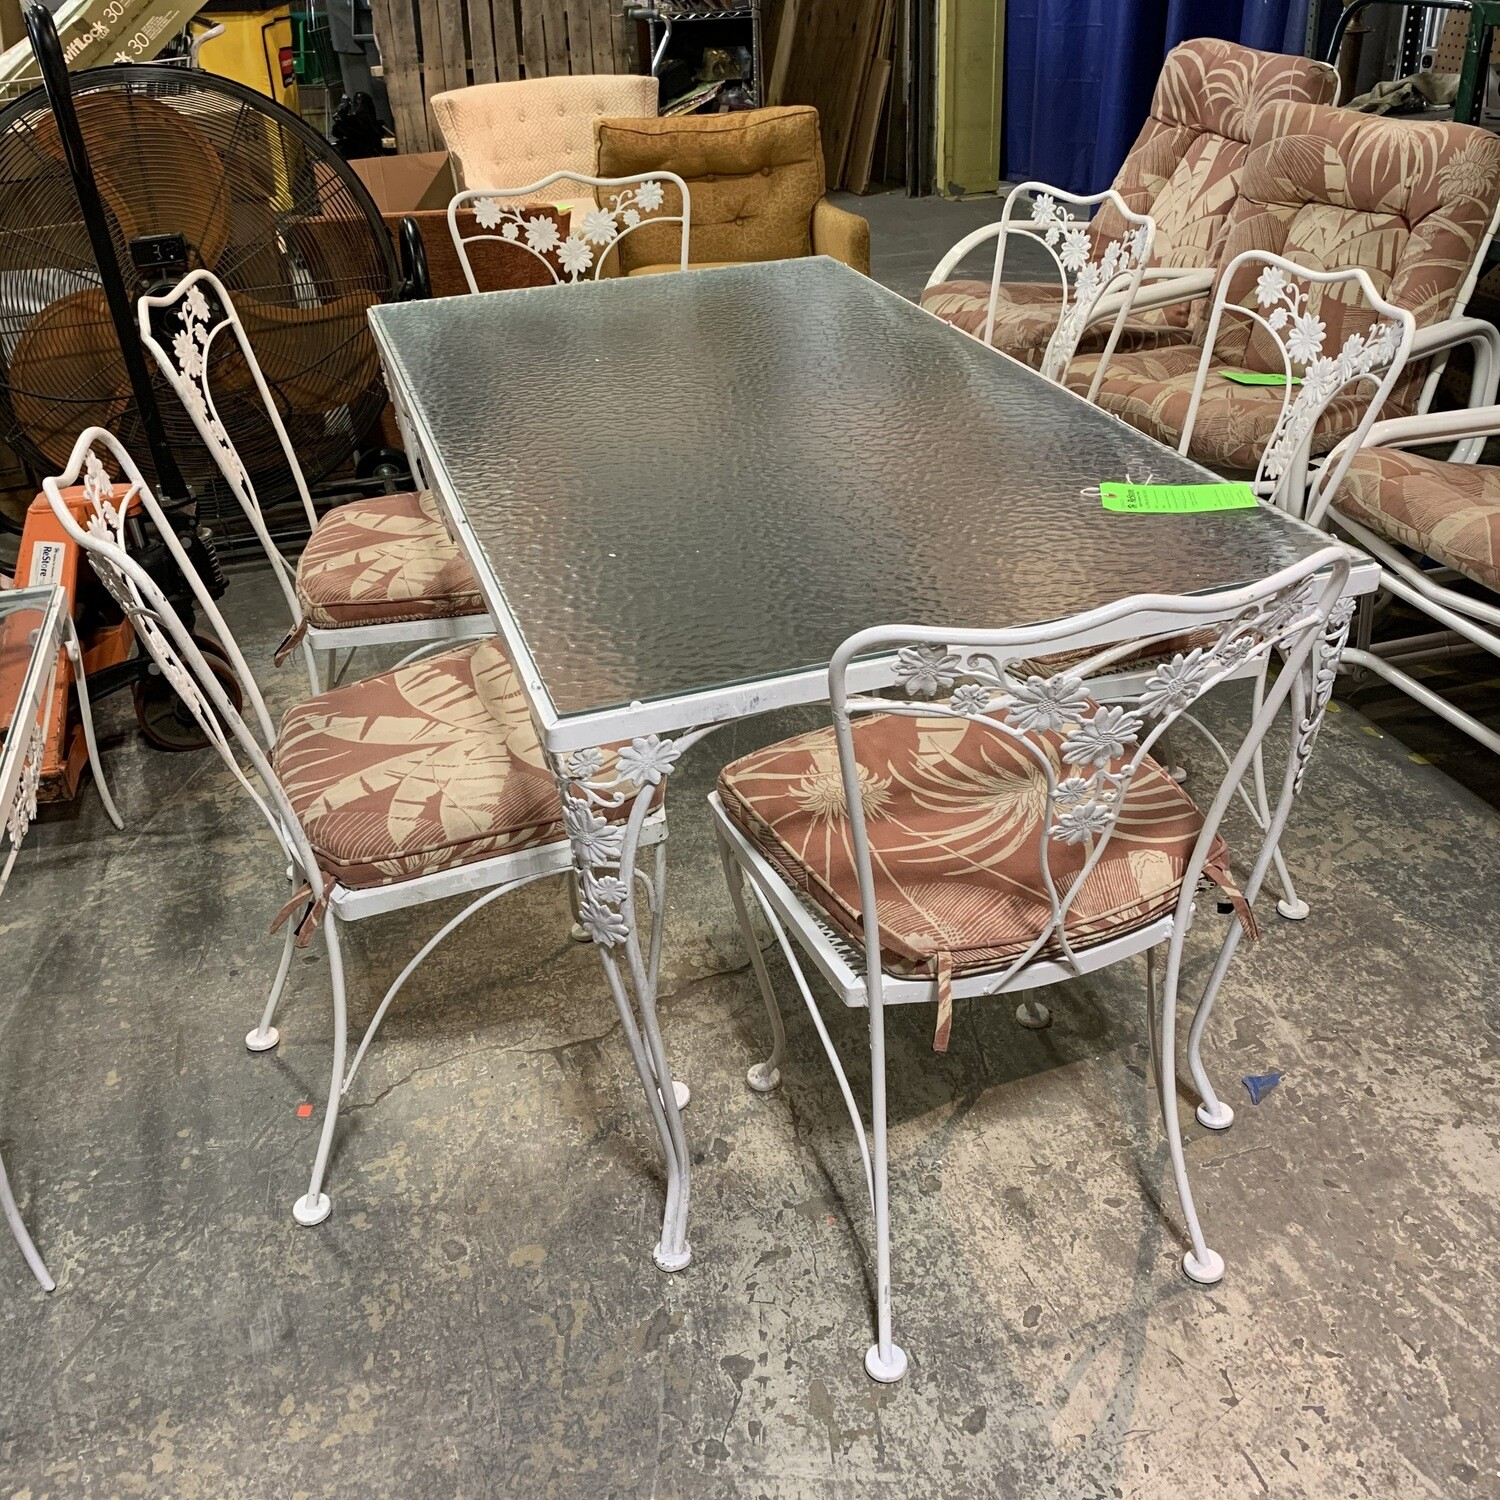 6 Outdoor Chairs, Dining Table, & Coffee Table With Cushions